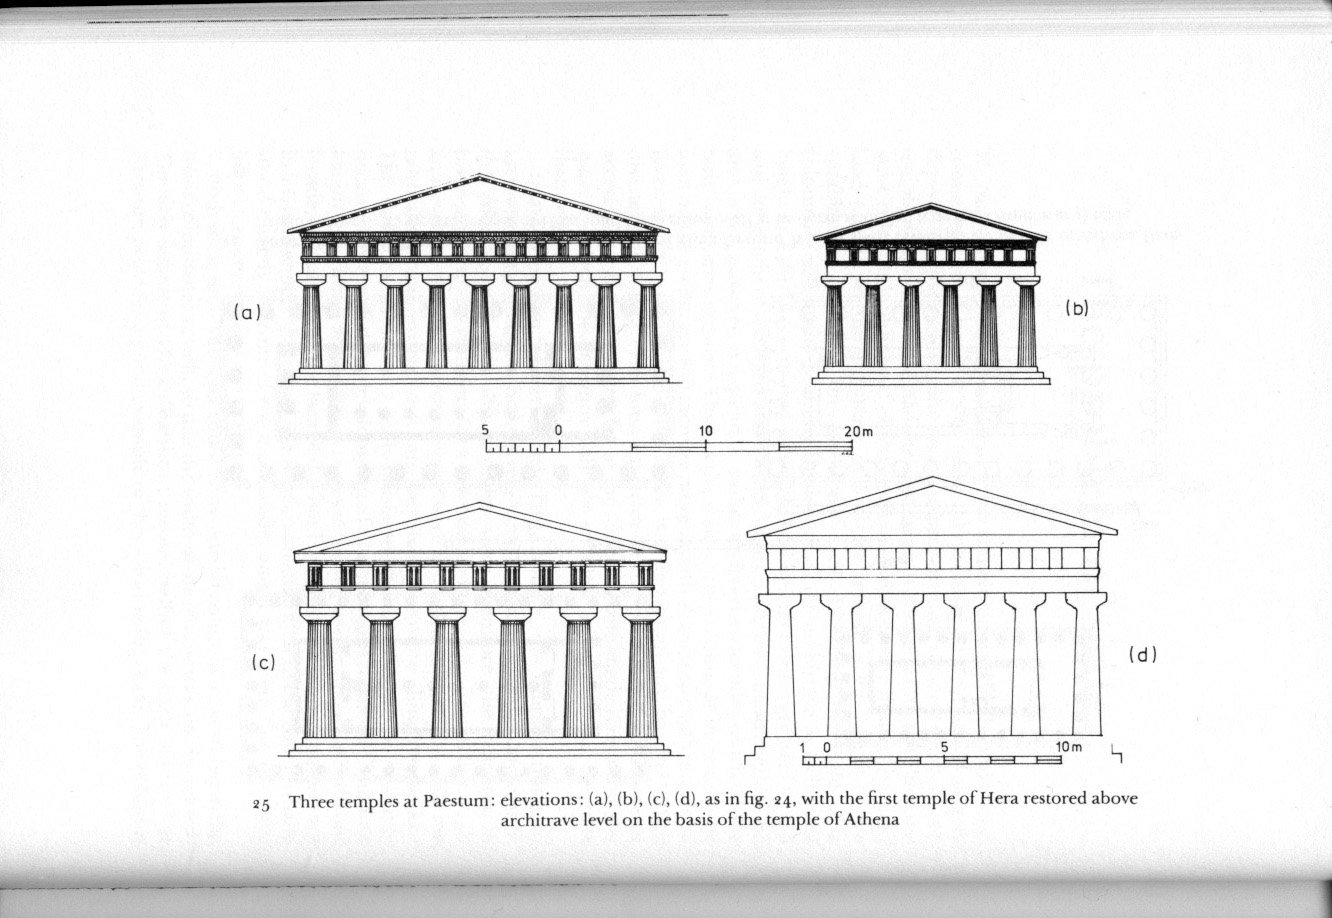 Elevations Of Temples At Paestum